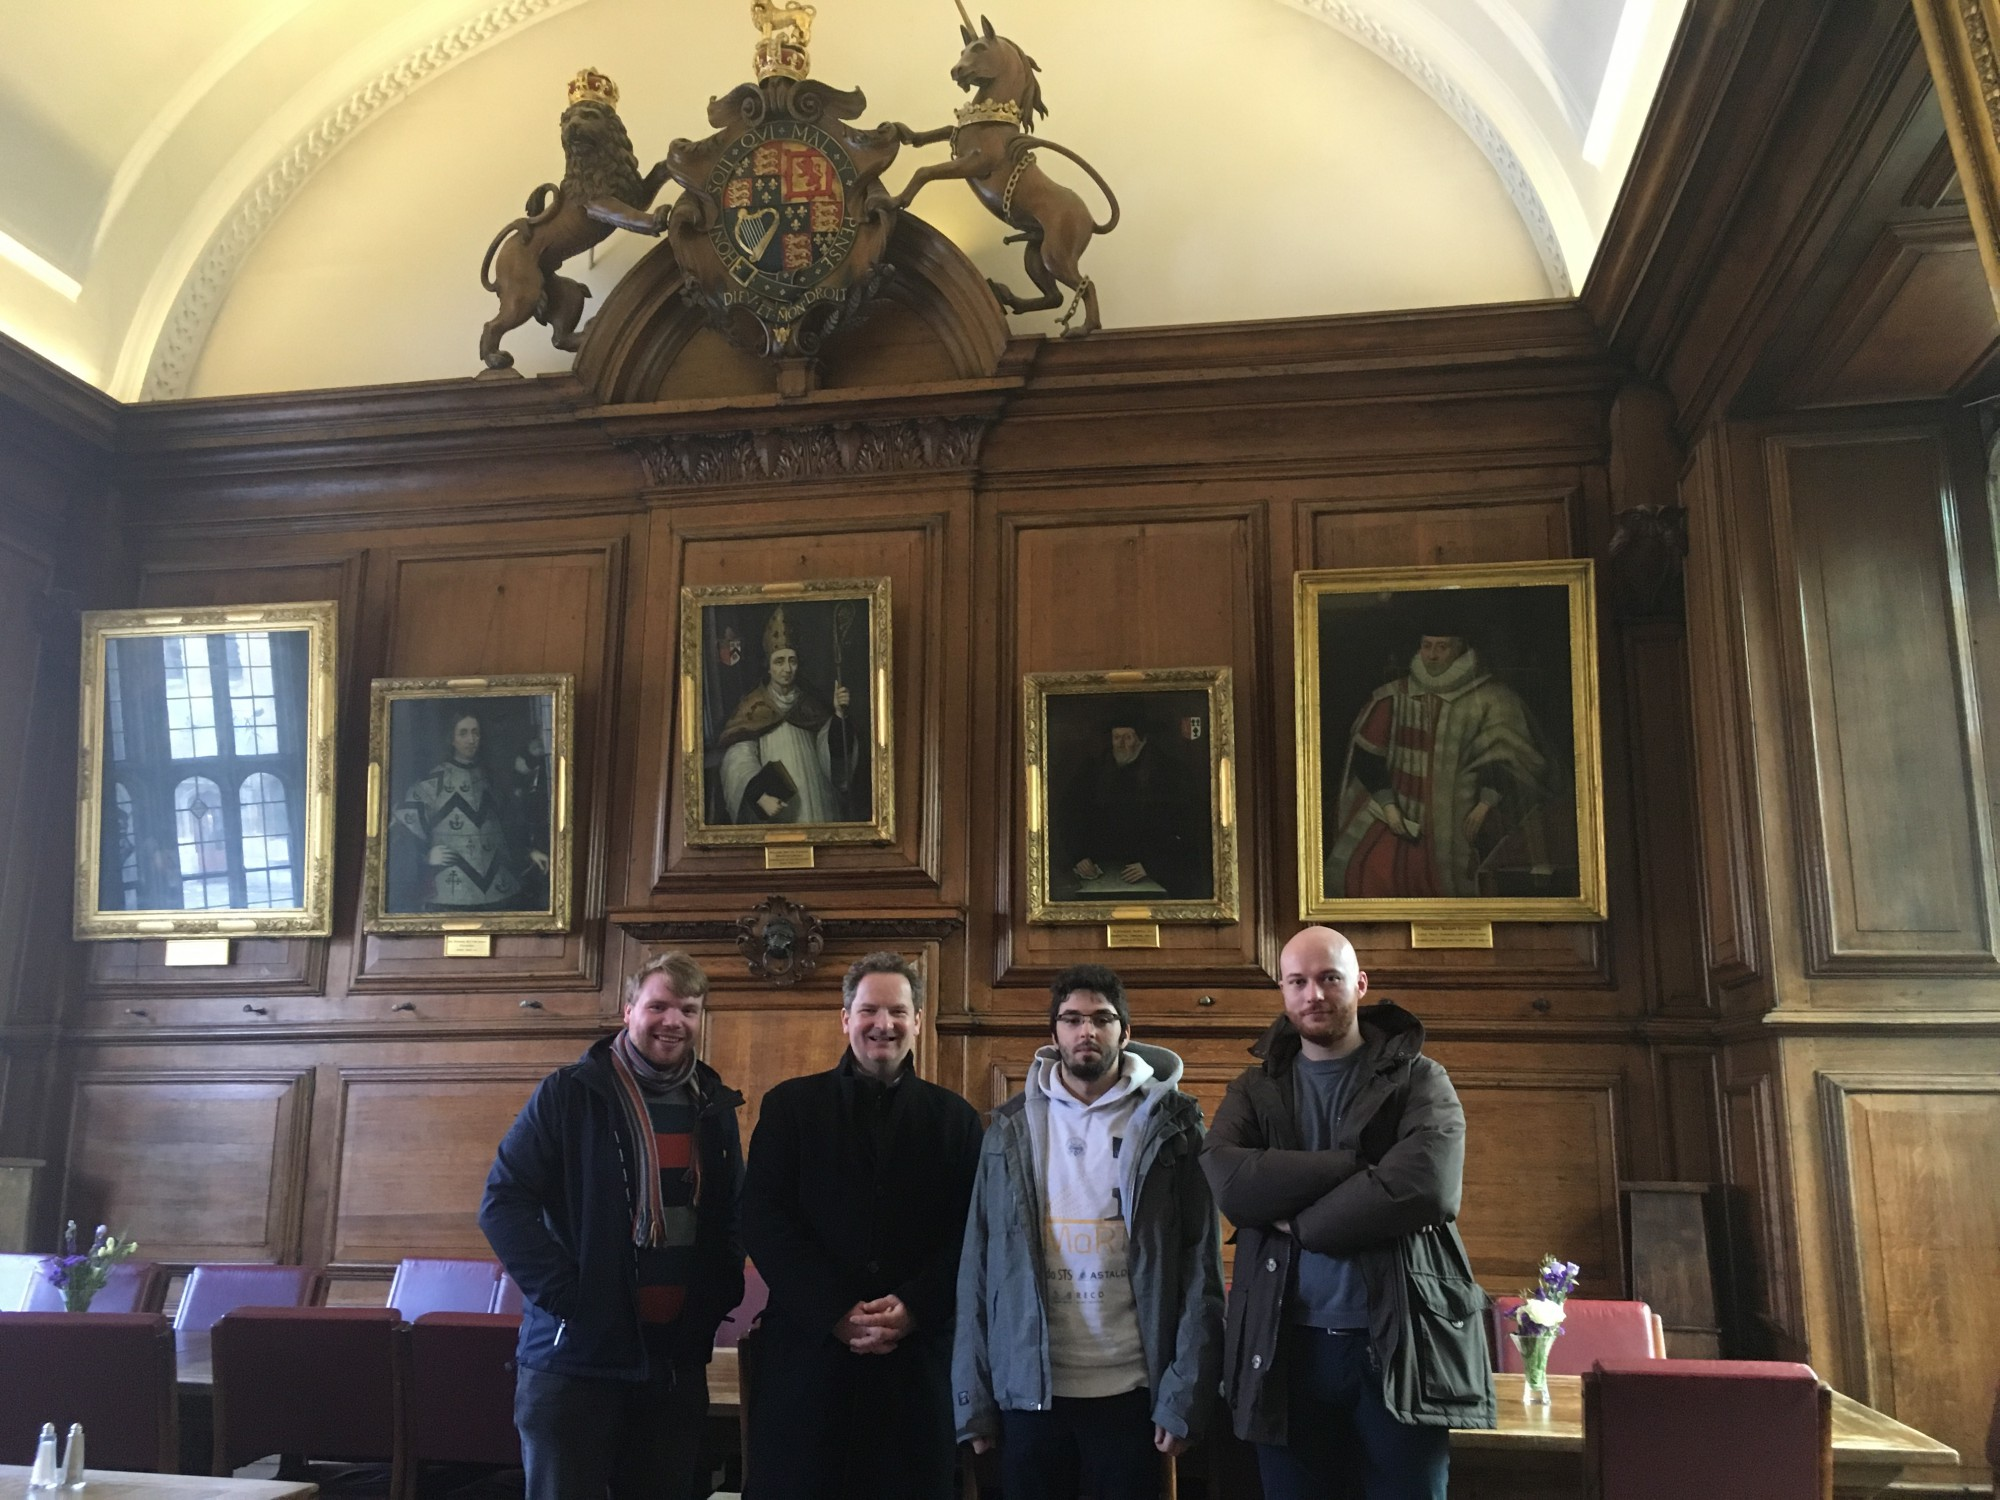 Members of the SMaRT project at the Brasenose College. From left to right: Ciaran Nash (ESR3, University of Oxford), Giles Wiggs (University of Oxford), Marko Horvat (ESR1, Politecnico di Torino) and Roberto Nuca (ESR2, Optiflow Company)